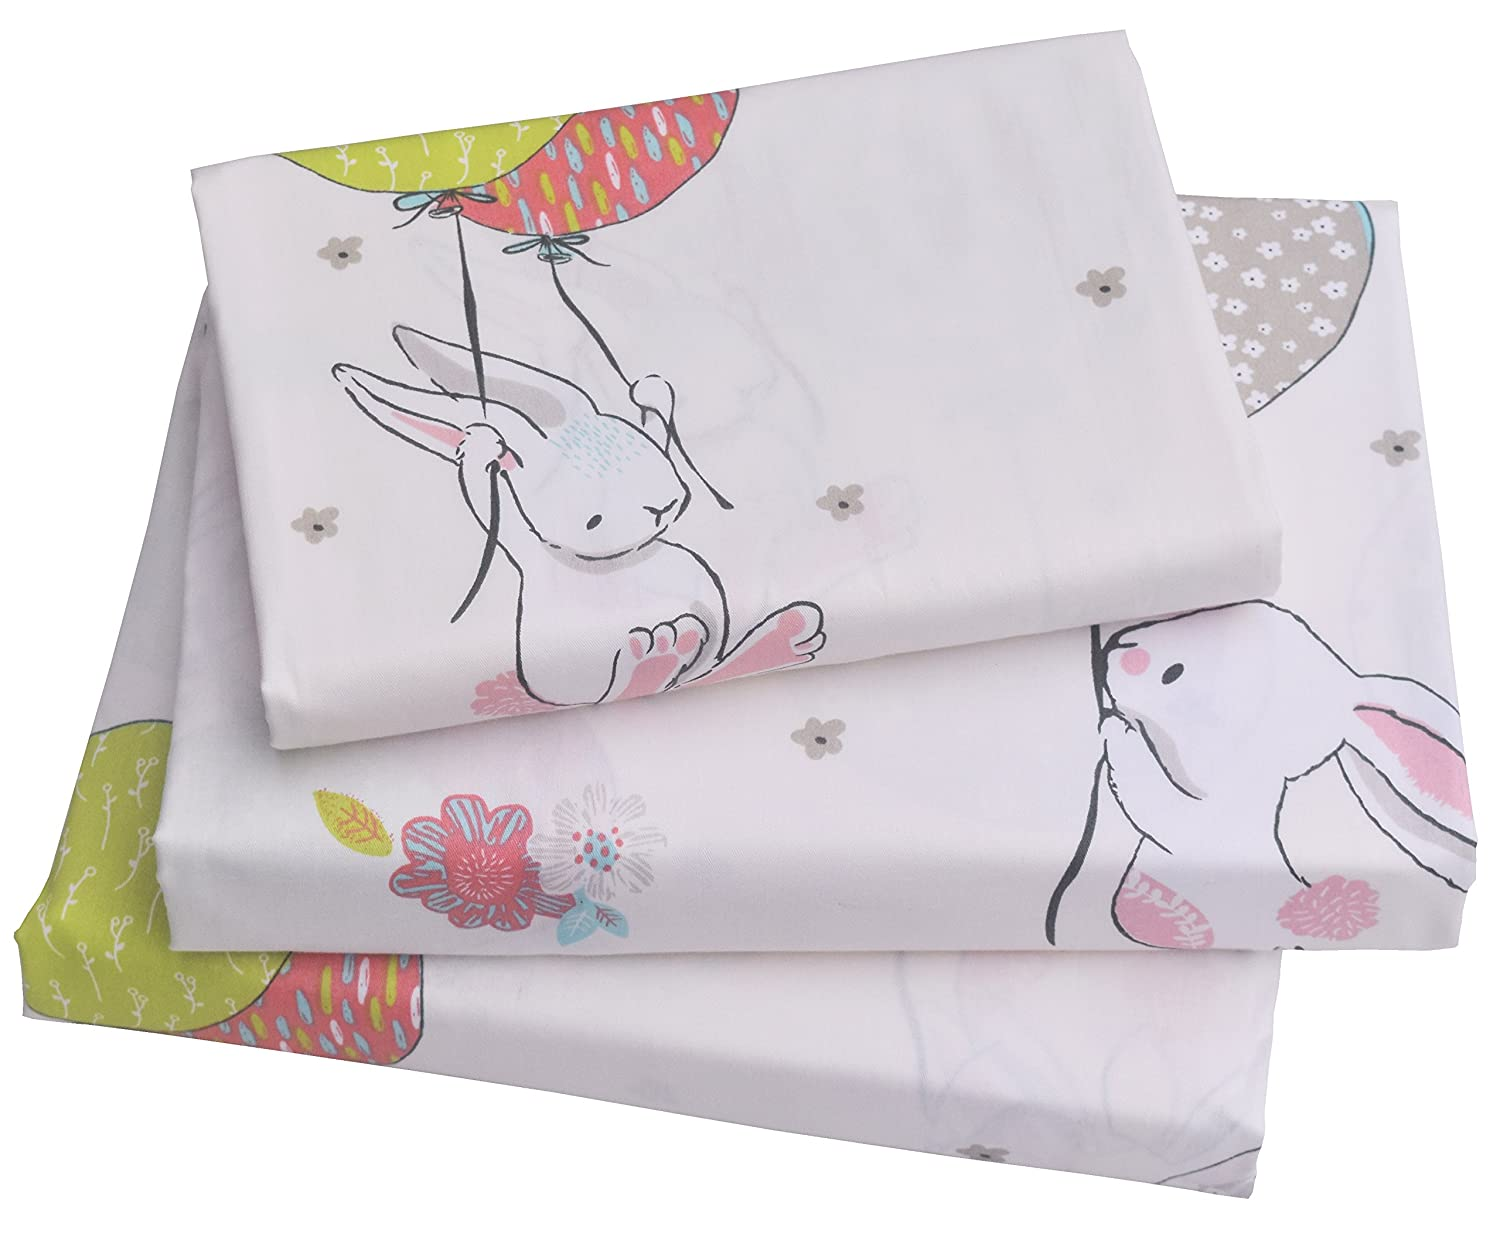 J-pinno Cute Cartoon Rabbit Bunny Twin Sheet Set for Kids Girl Children Bedding Set